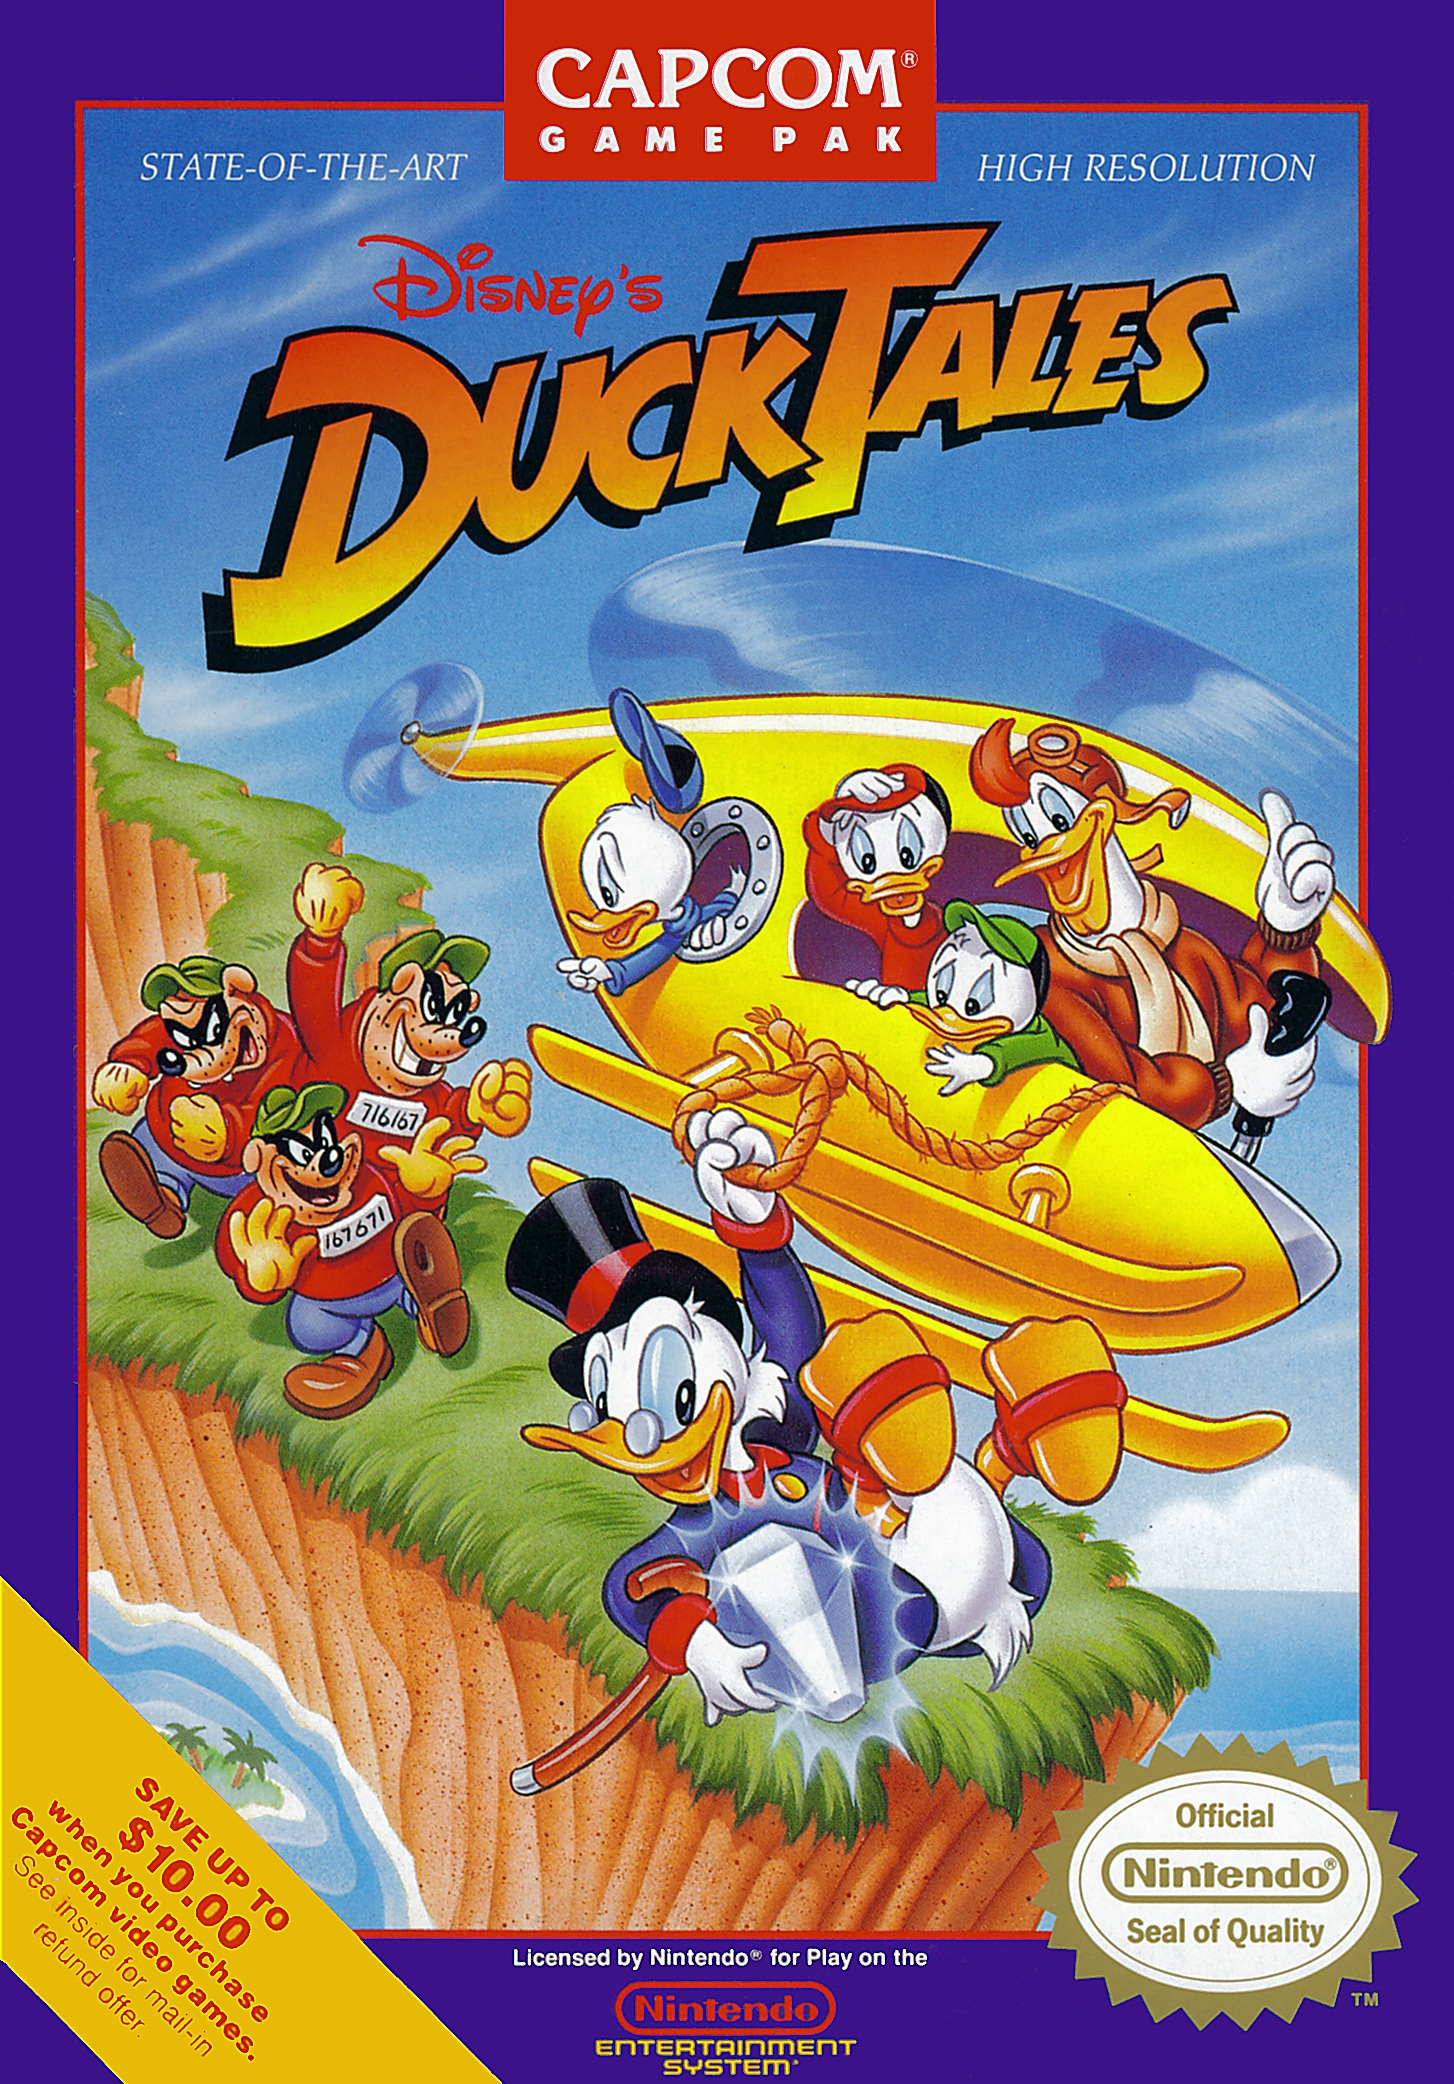 W Ducktales PS3 Exclusive DuckTale...